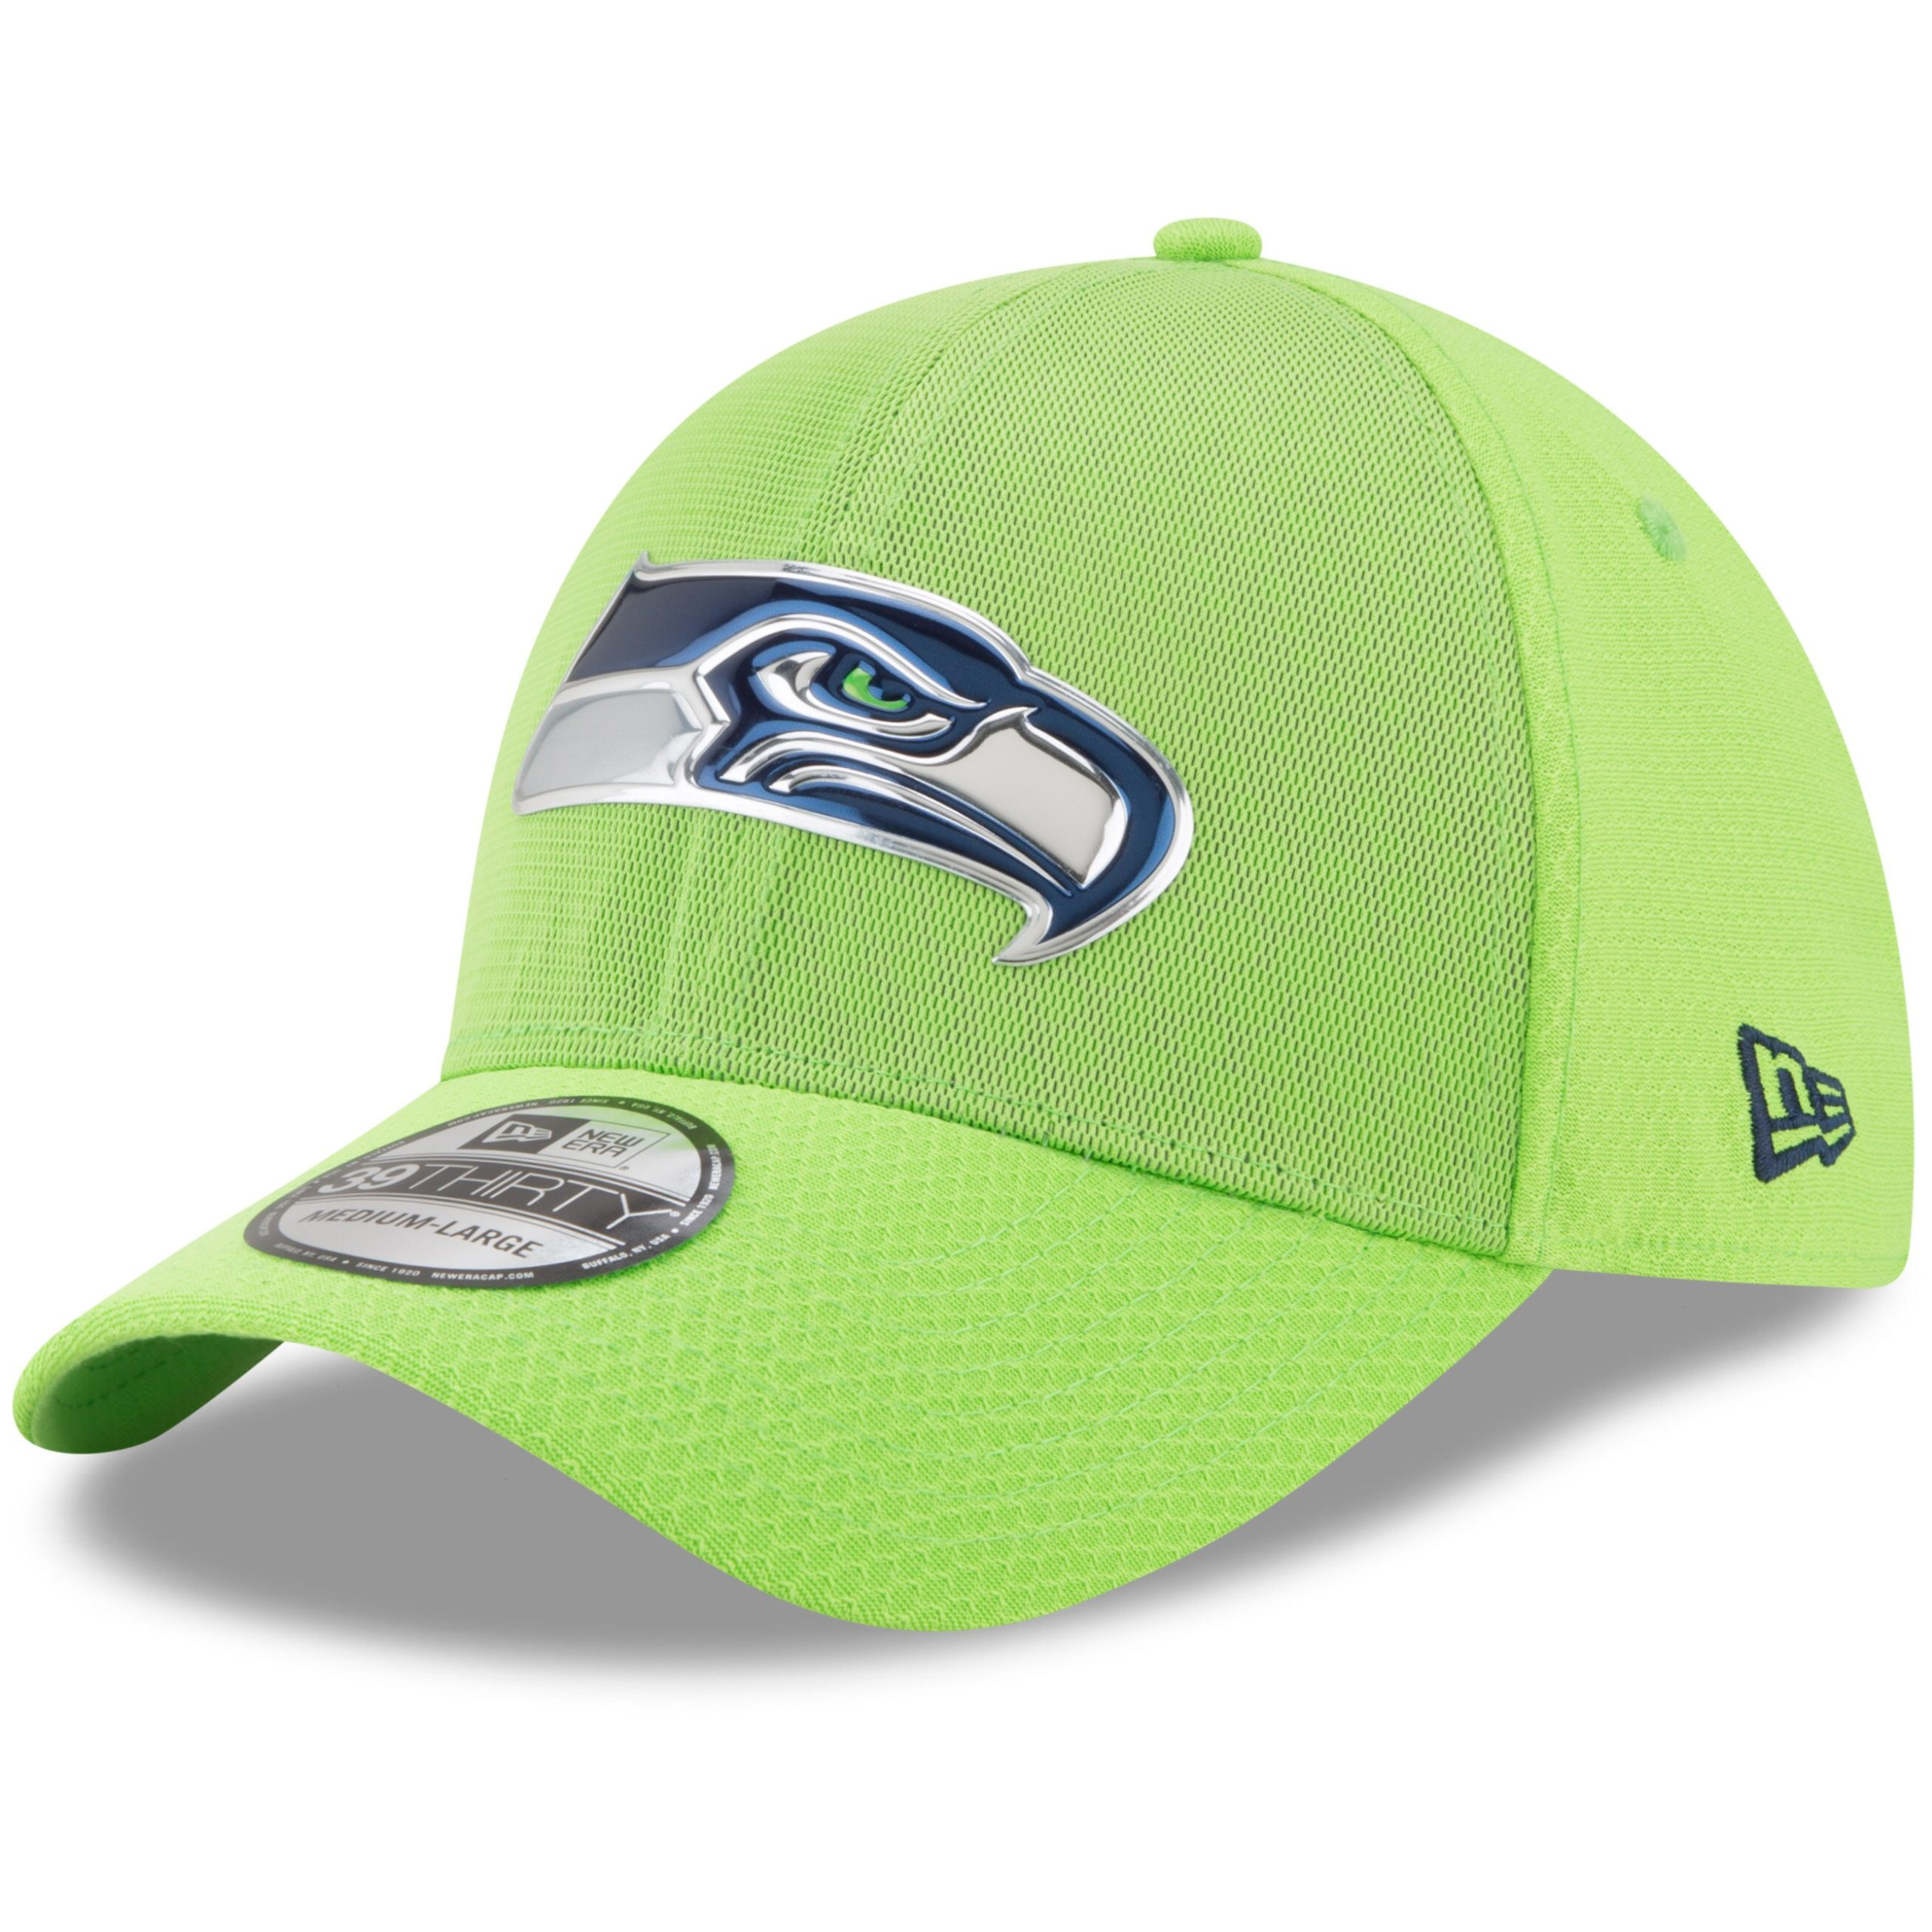 Seattle Seahawks New Era 2017 Color Rush 39THIRTY Flex Hat - Neon Green